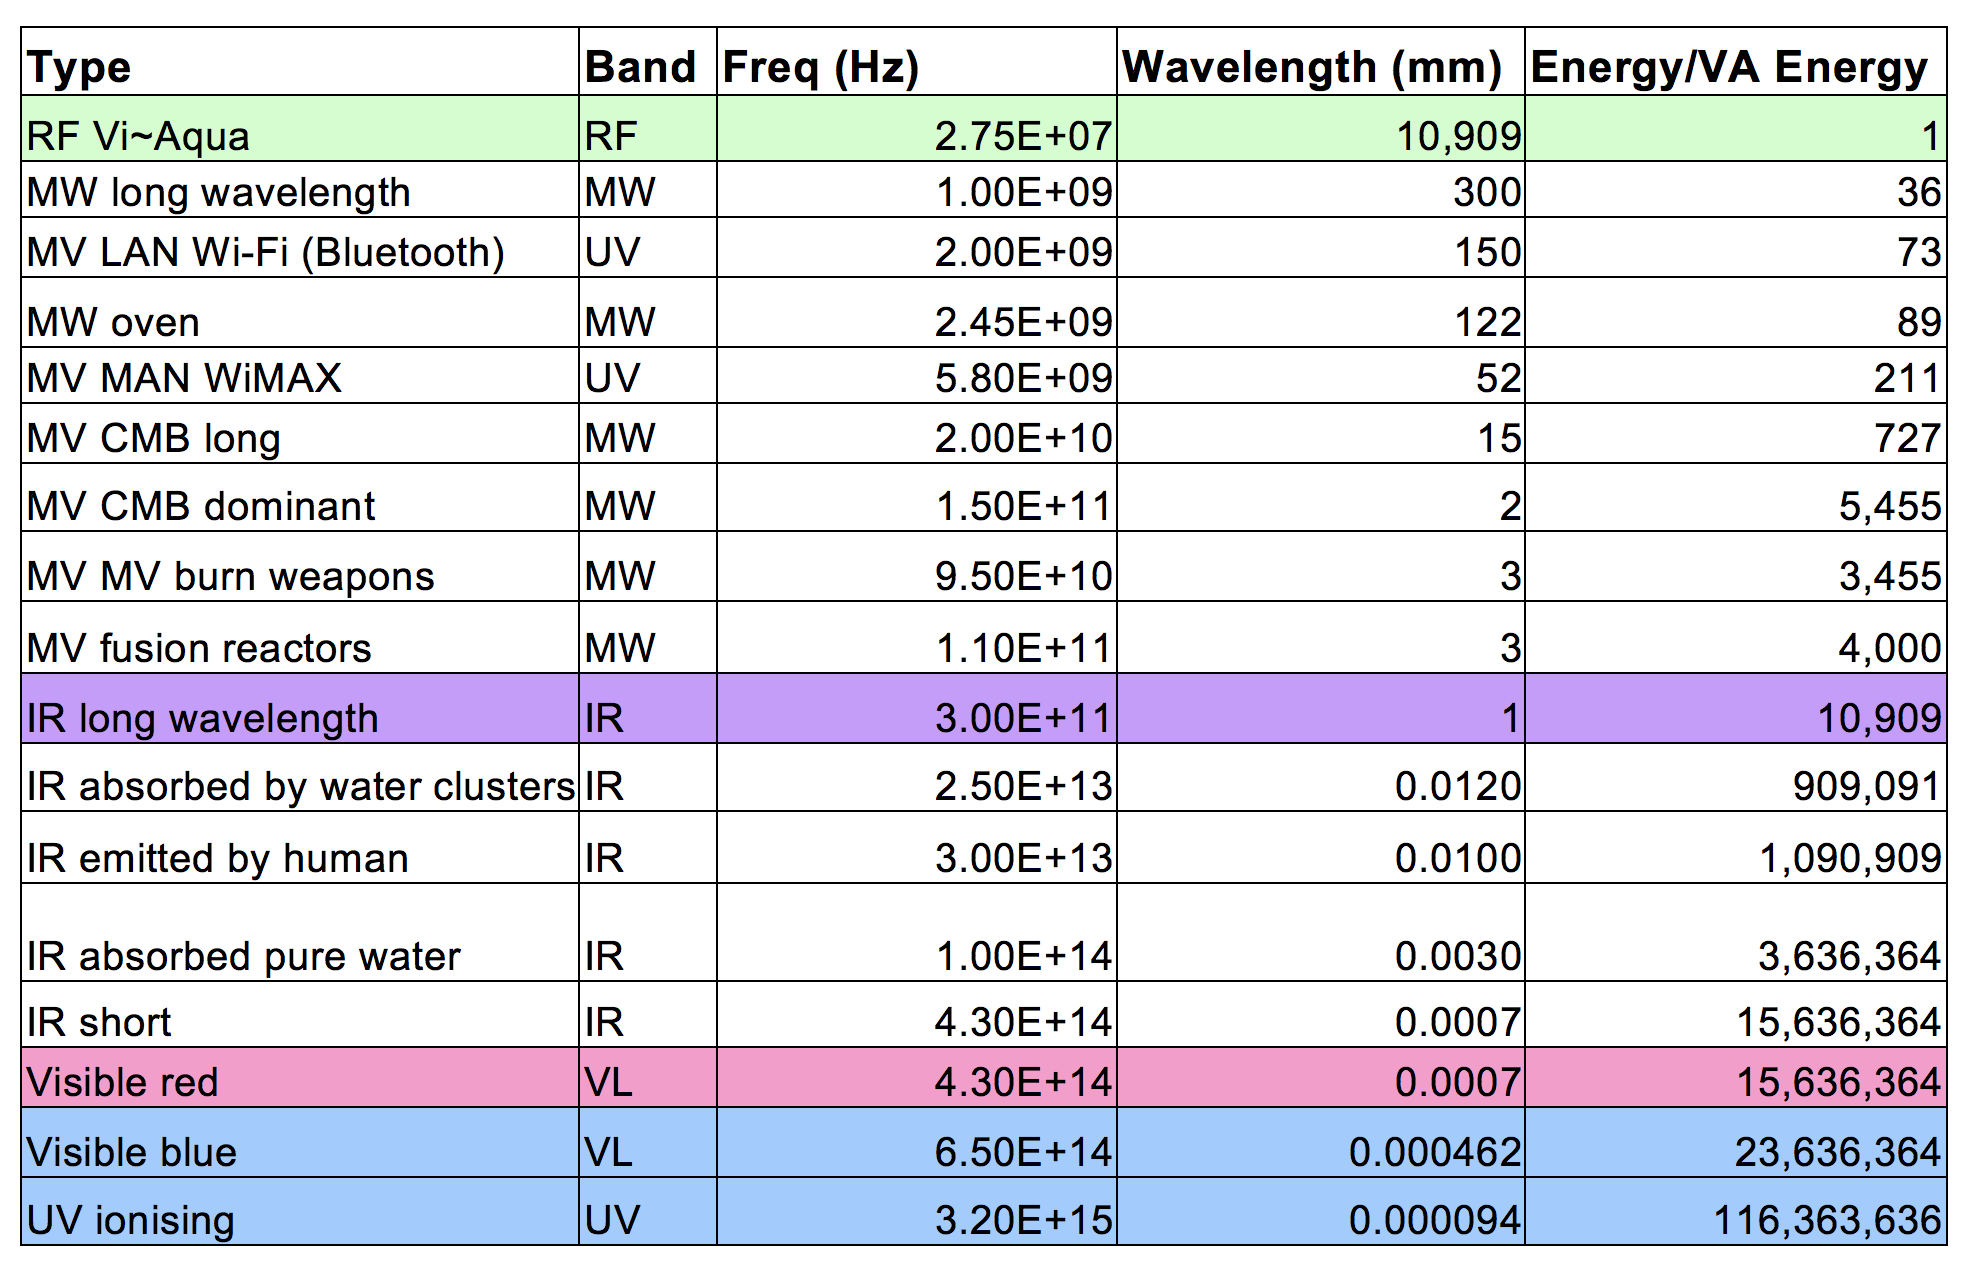 Table 16. Frequencies, wavelengths and energies for typical EM radiation. This illustrates typical energies of EM radiation in various bands, for comparison with the RF radiation in the experiment.